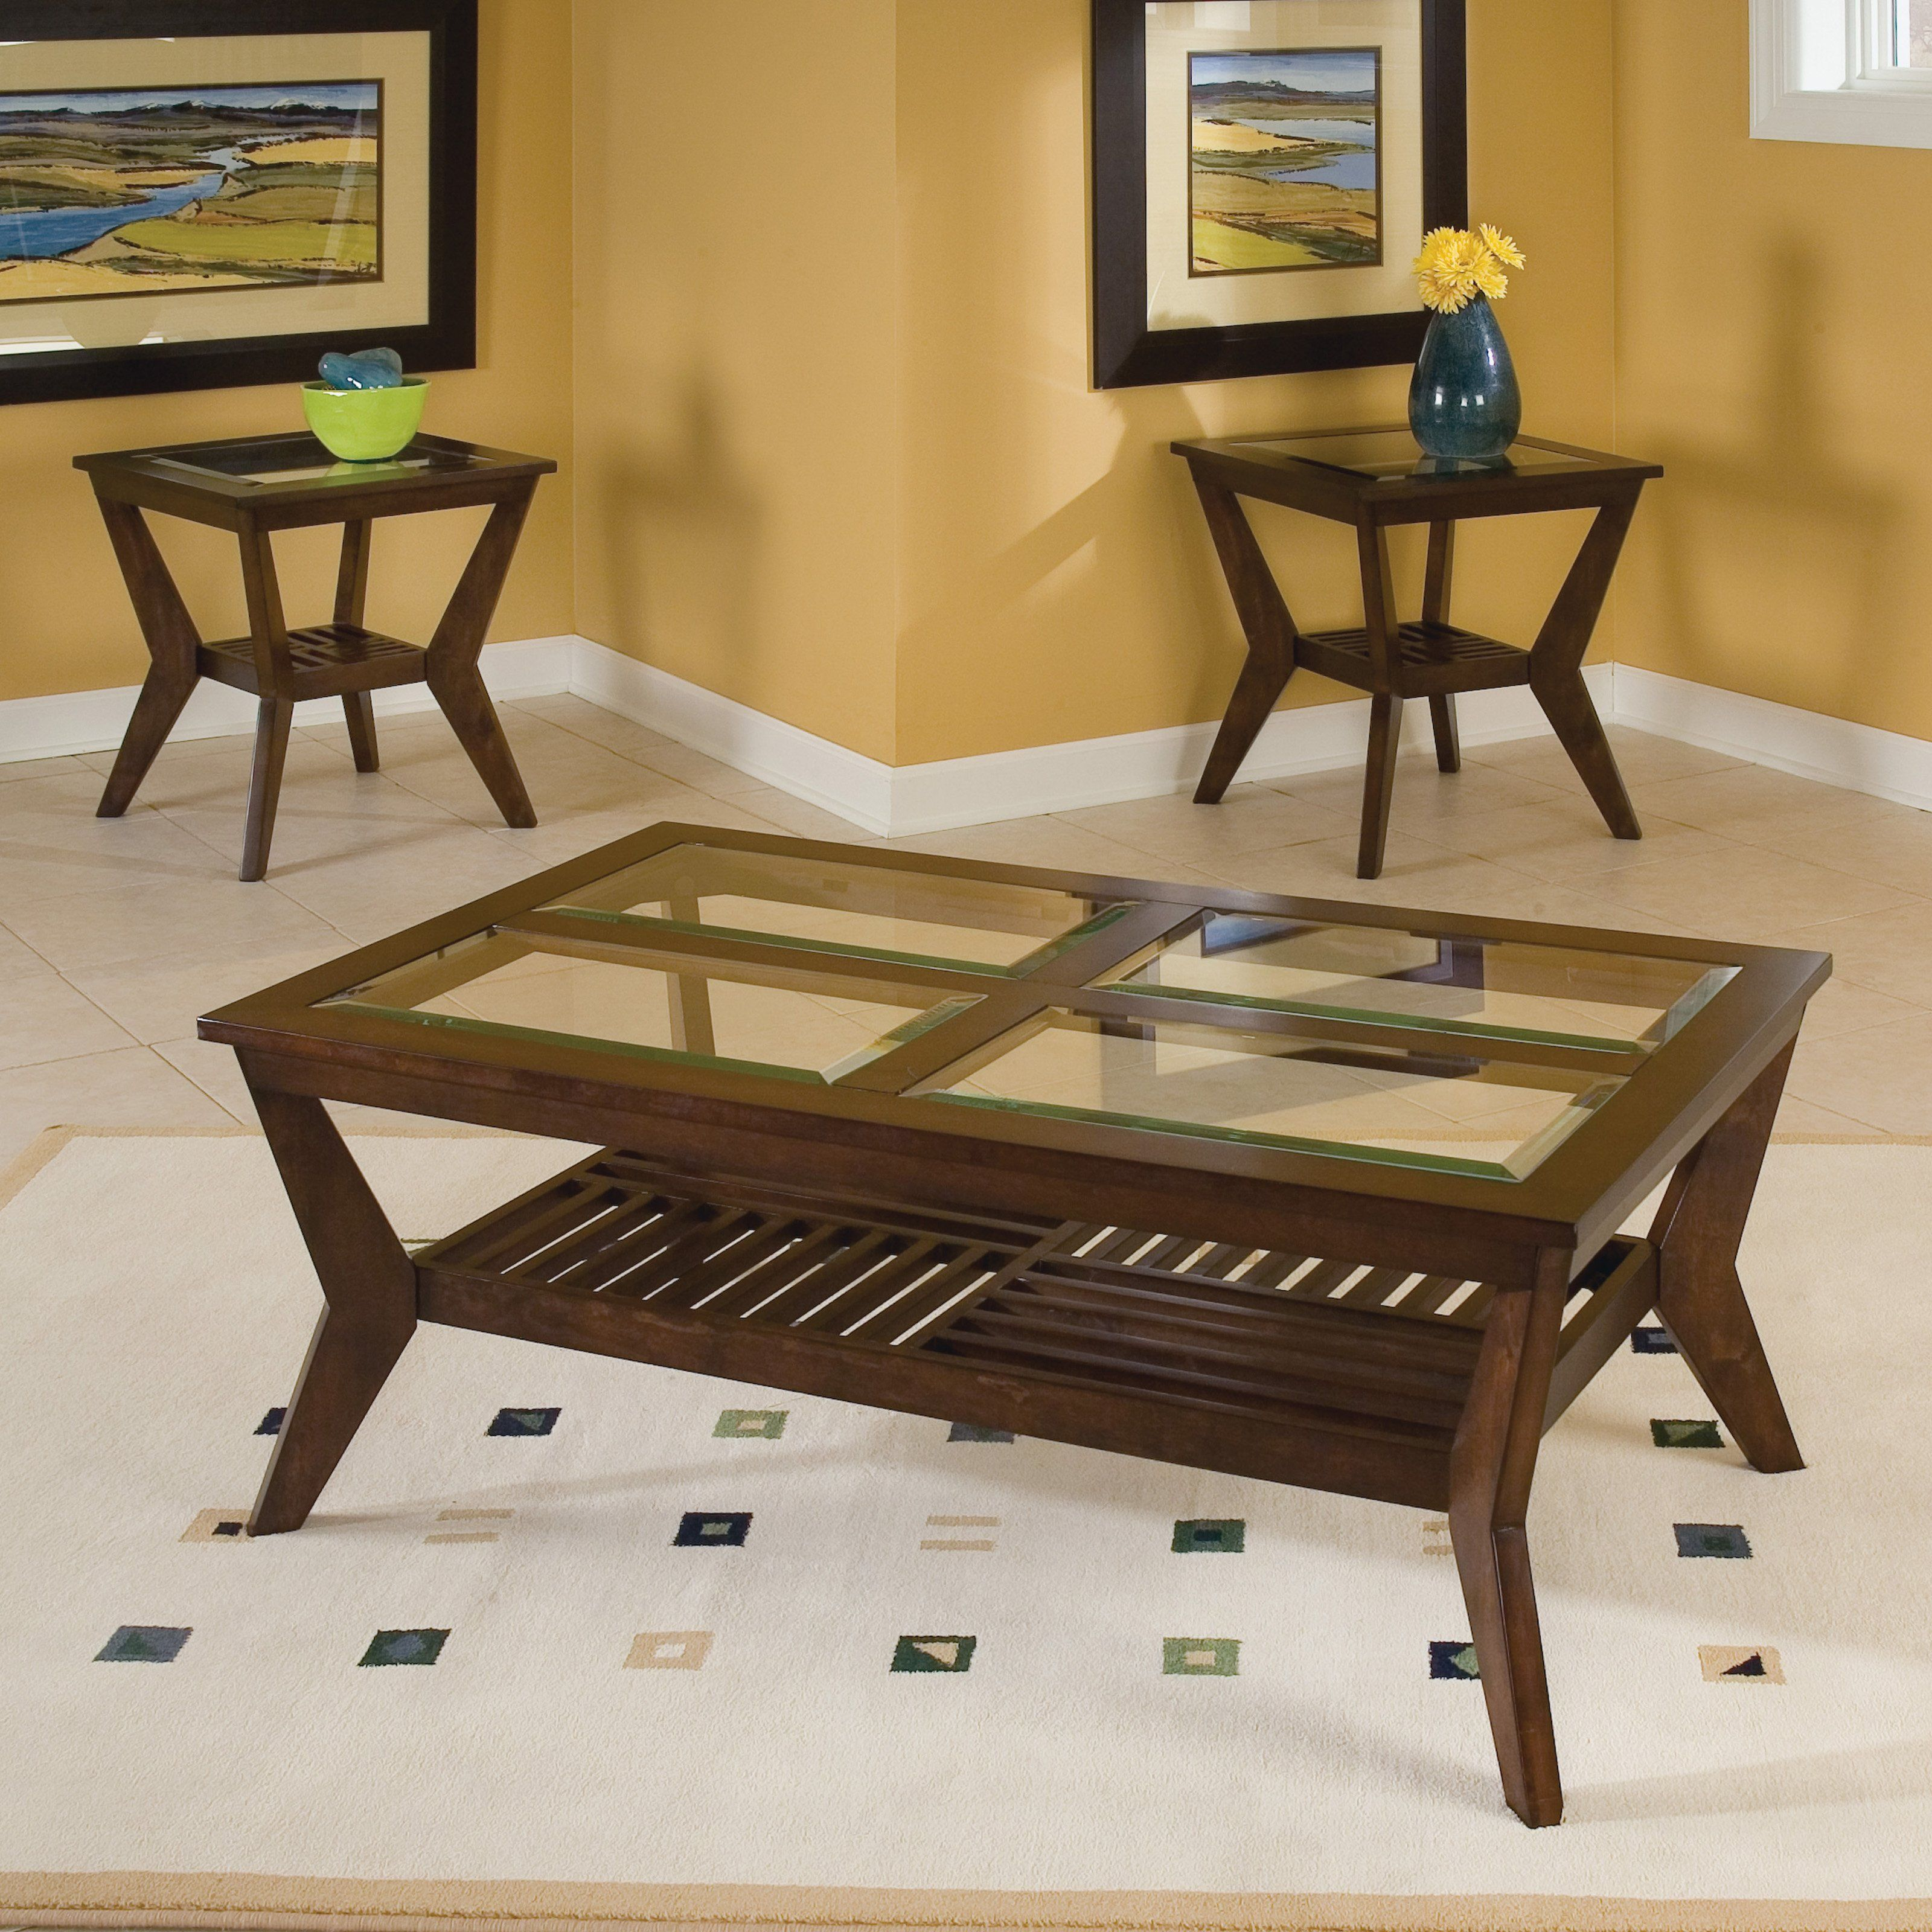 Have To Have It Standard Furniture Norway Coffee Table With 2 End Tables 363 3 Hayneedle Com Living Room Coffee Table Standard Furniture Coffee Table [ 3200 x 3200 Pixel ]